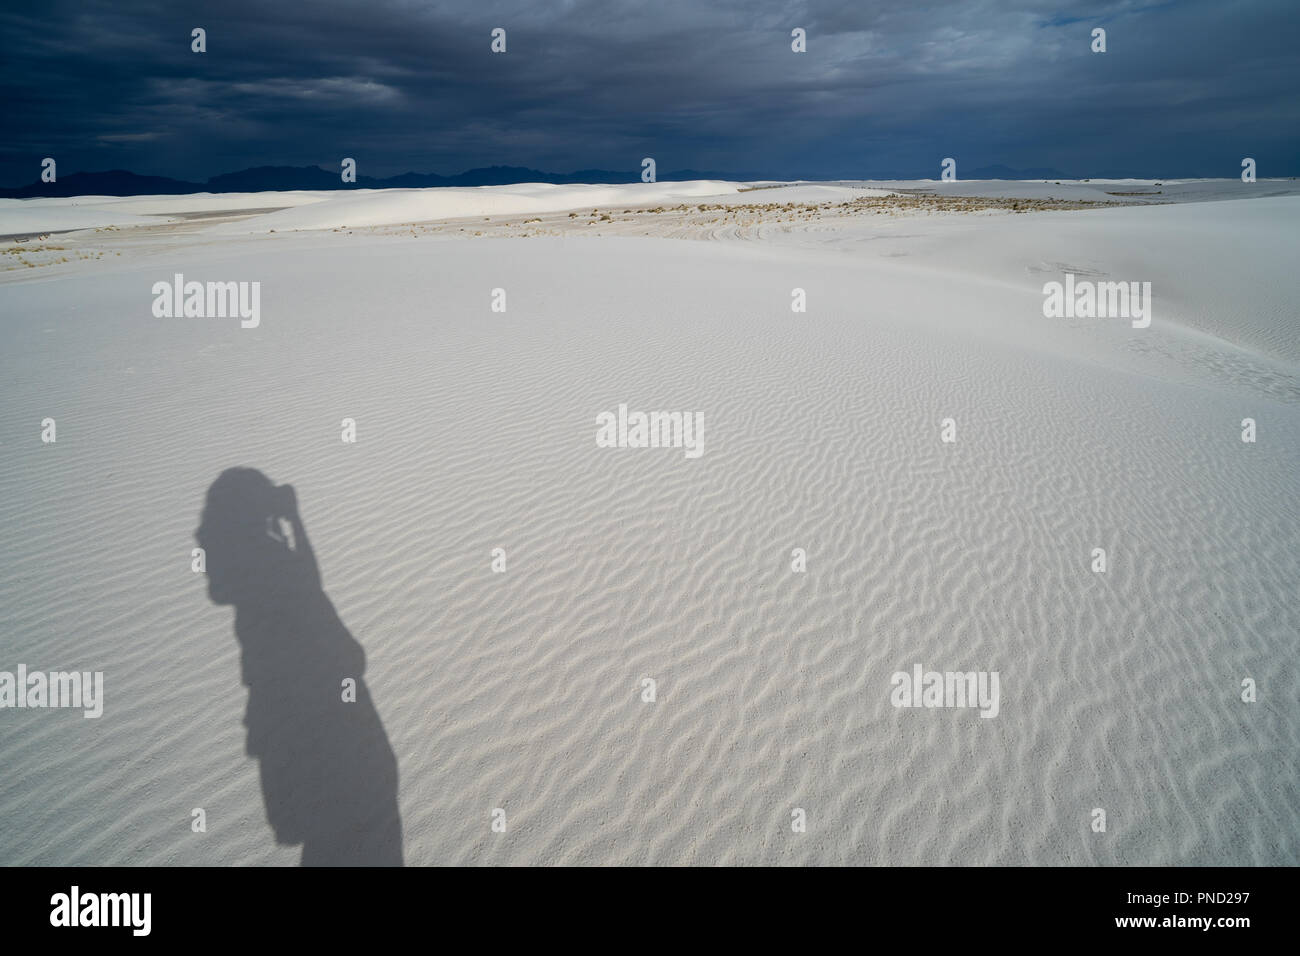 Shadow cast on the gypsum sand of a photographer taking pictures in White Sands New Mexico National Monument - Stock Image